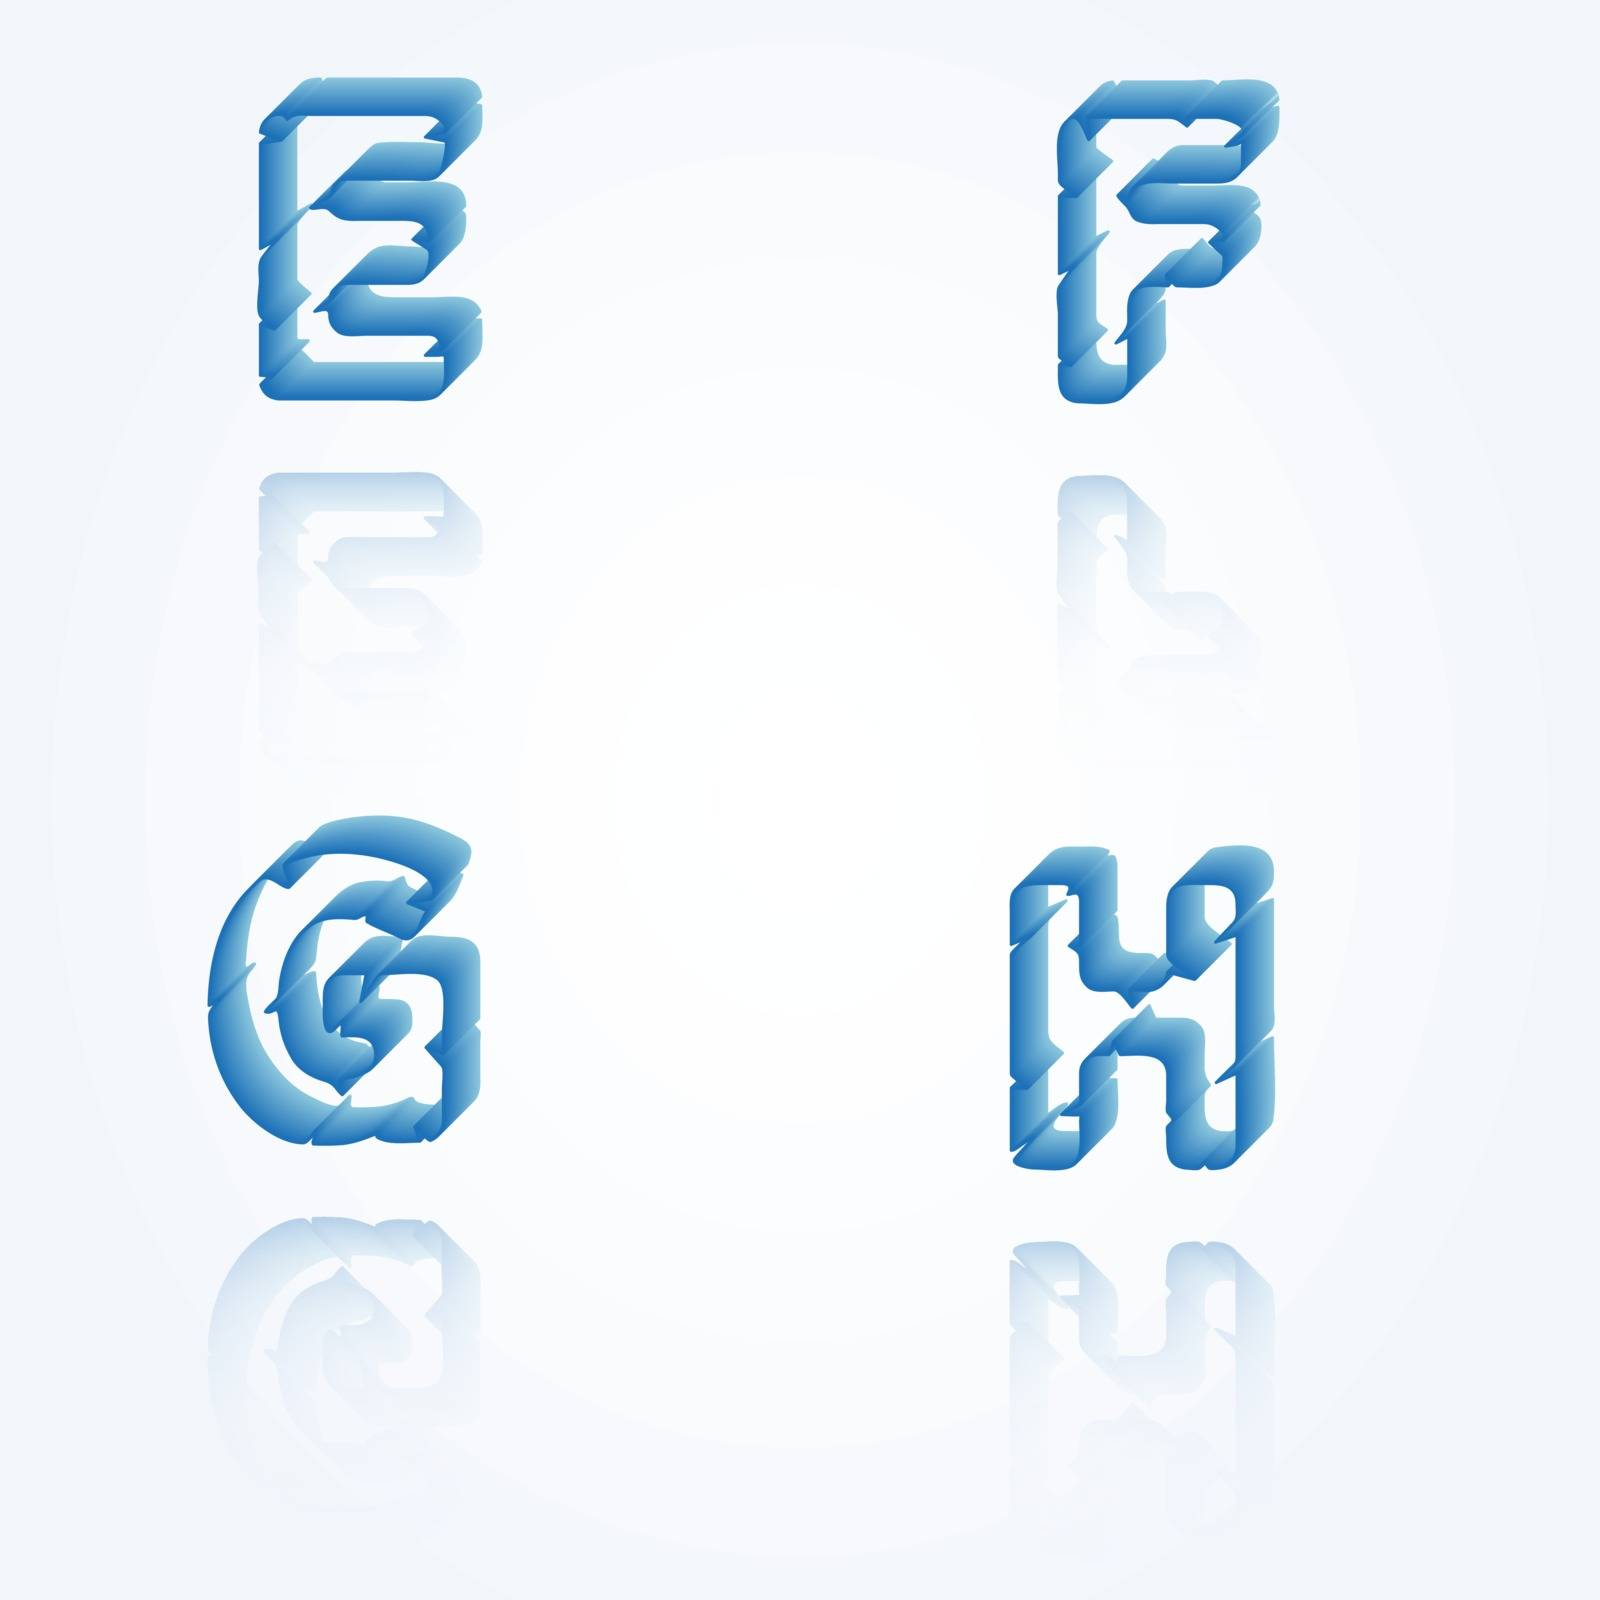 sketch jagged alphabet letters with 3d effect and shadow on white background, E, F, G, H